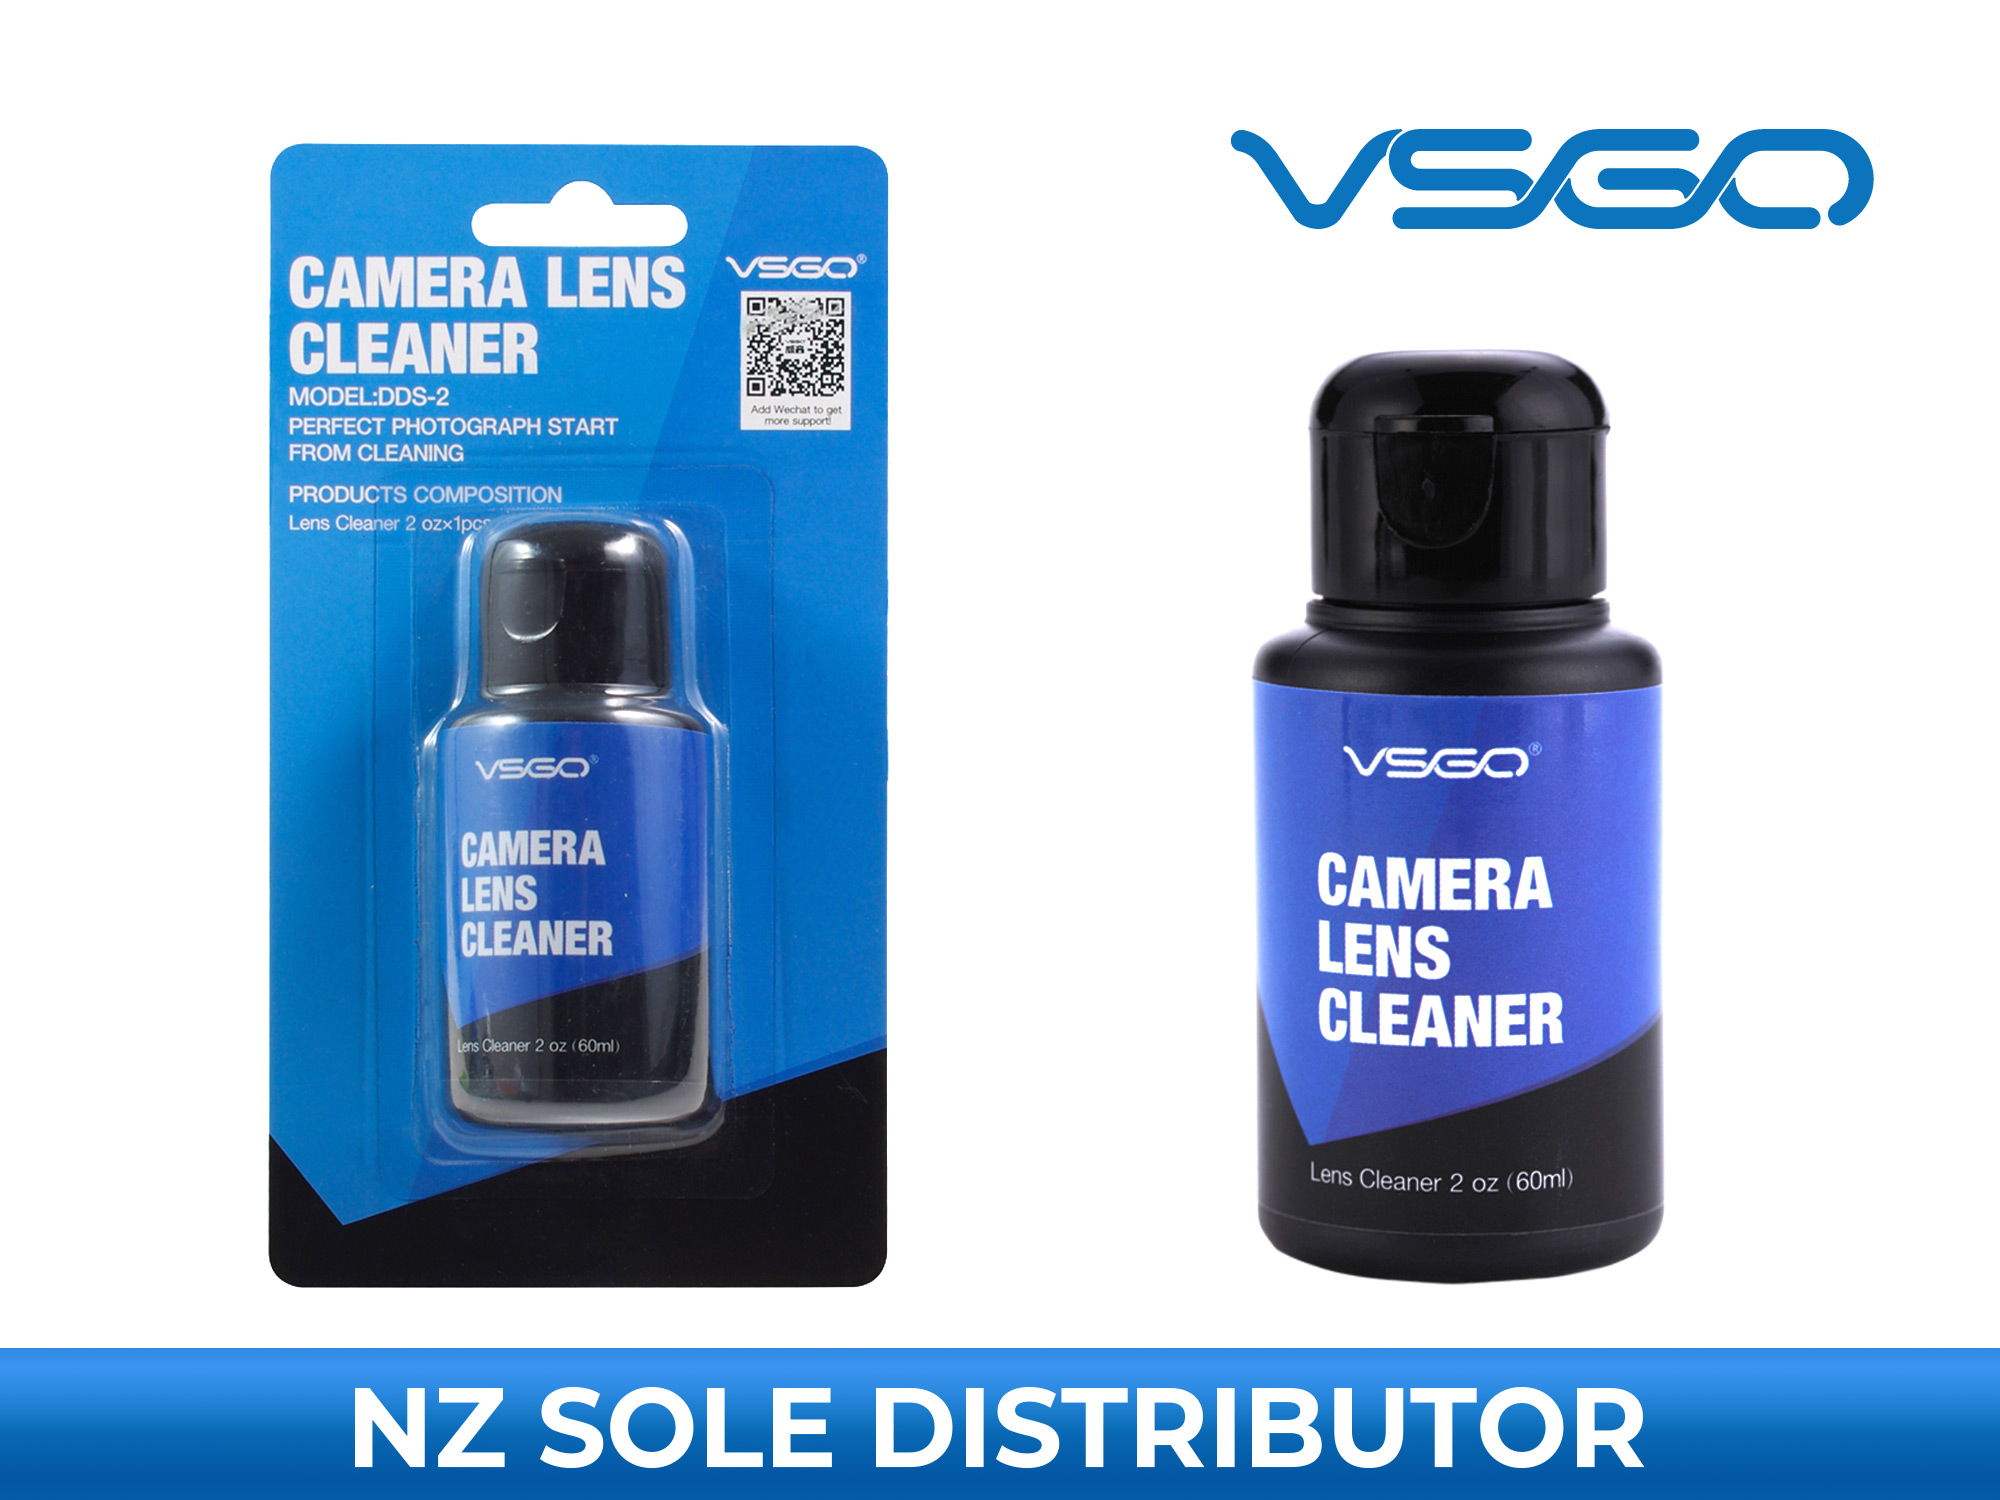 Camera Lens Cleaning Solution - VSGO